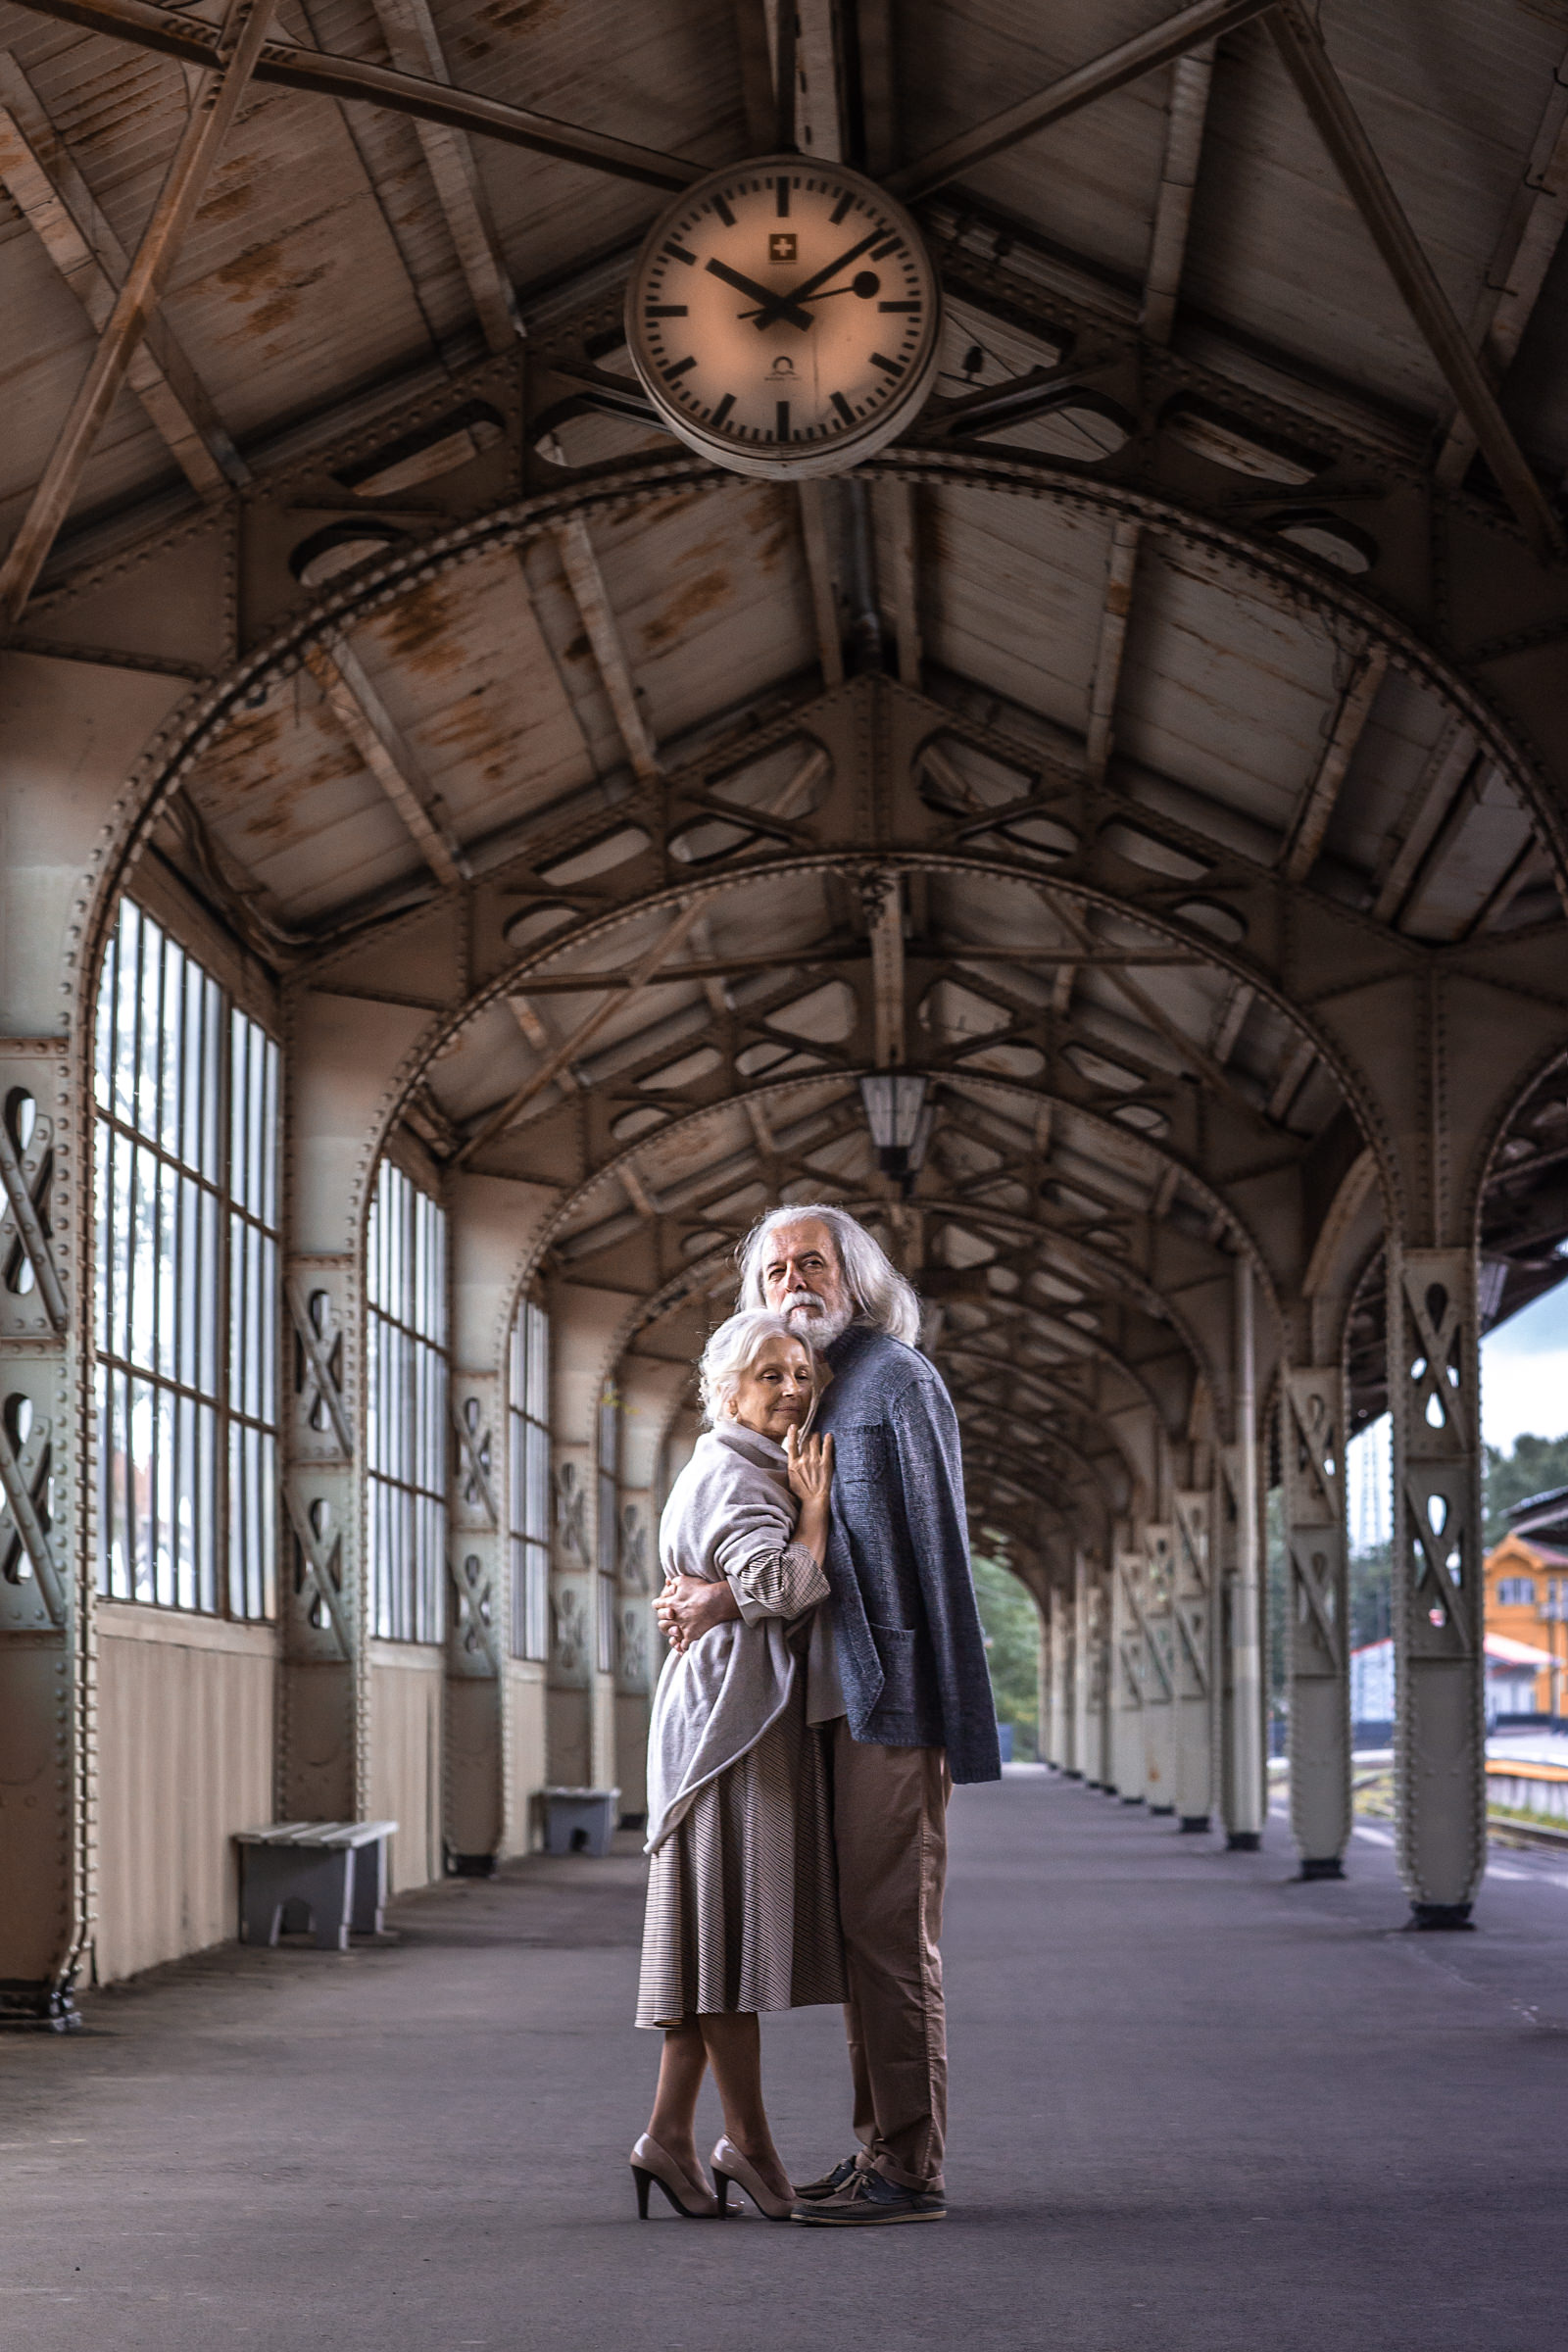 Older couple in train station underneath clock - photo by Bagrada Photos